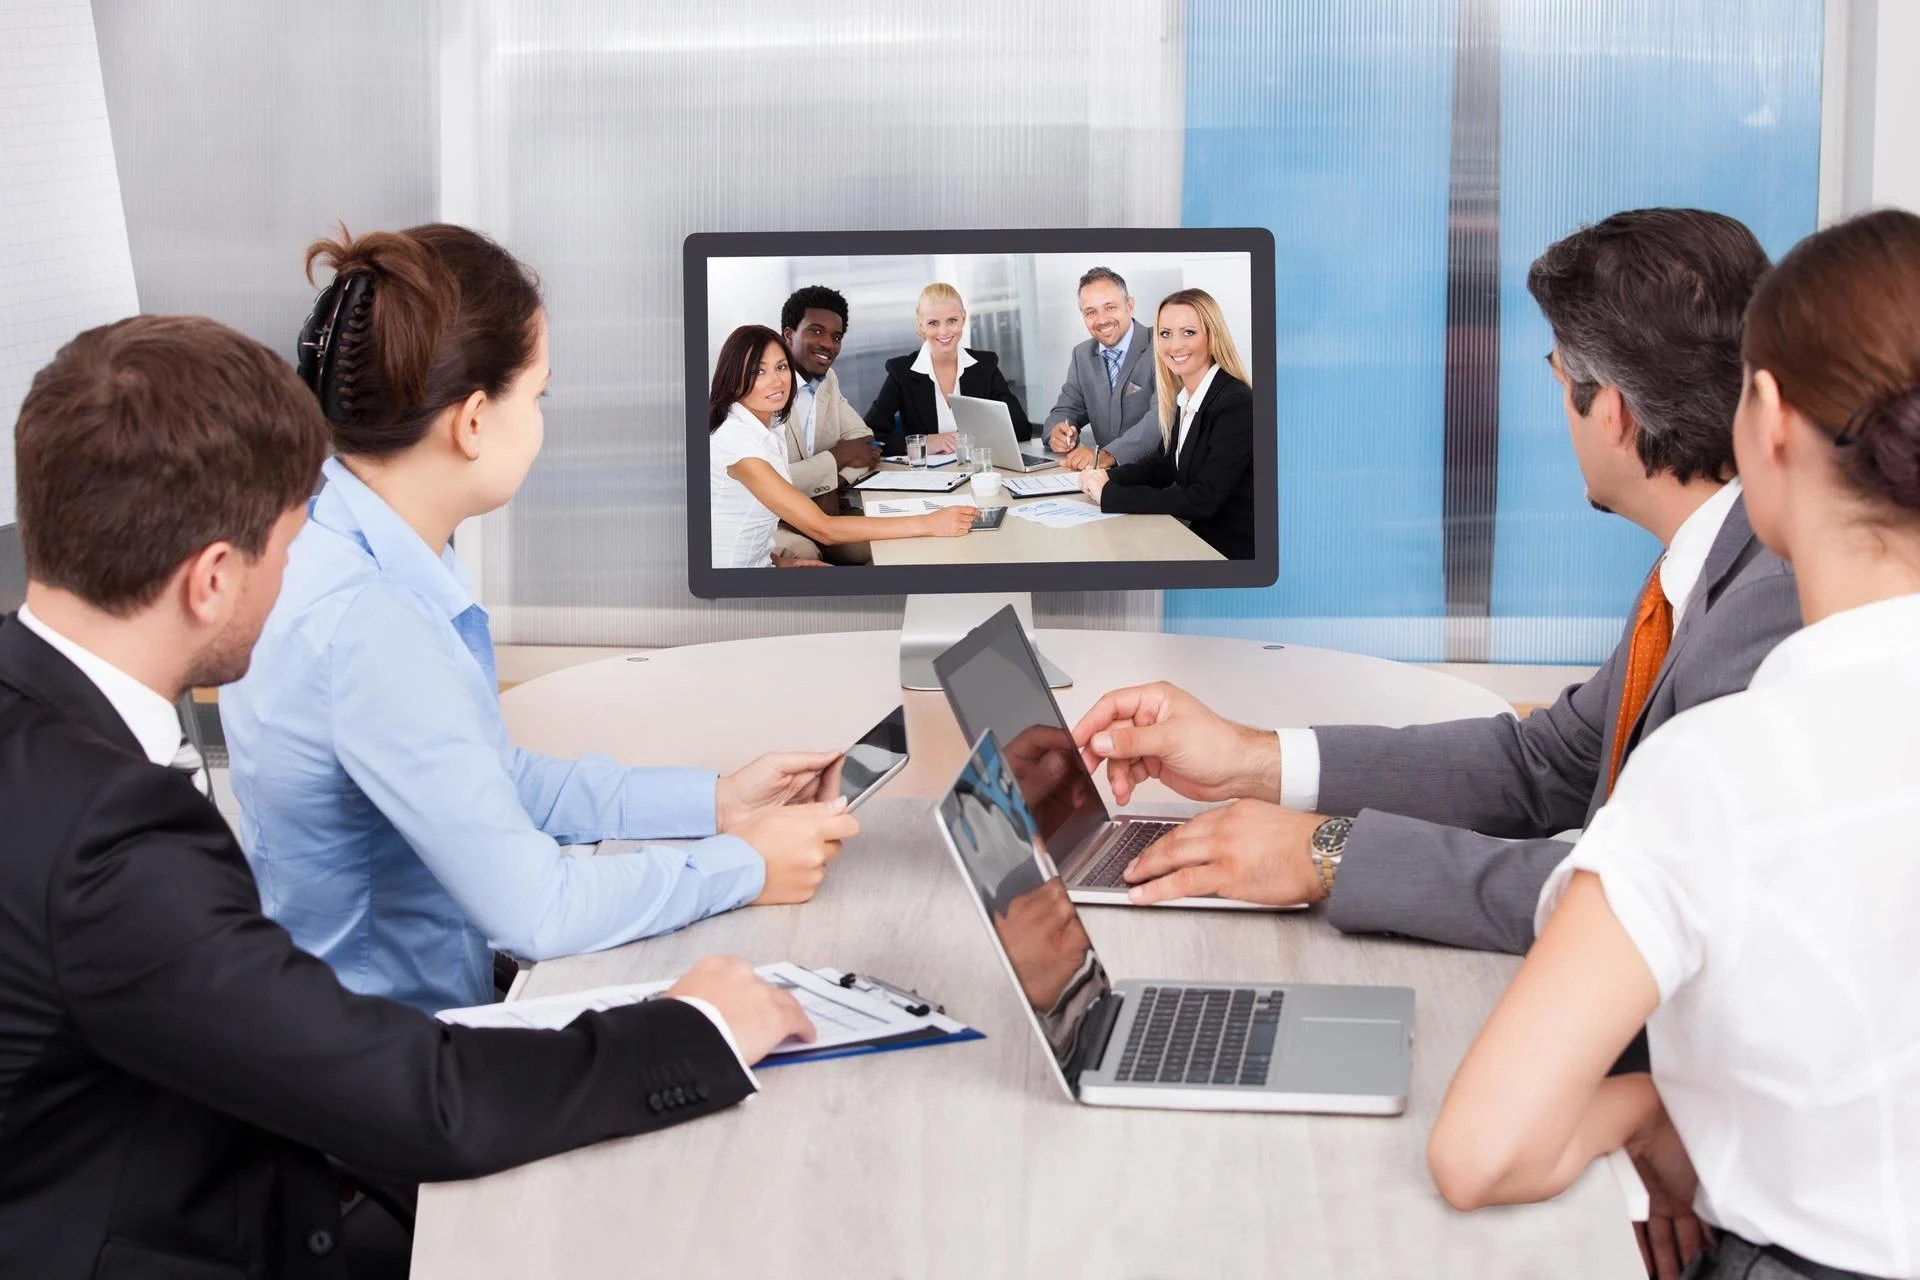 Webinar Vs Virtual Classroom Lecture Vs Learning - Online Meeting Classroom